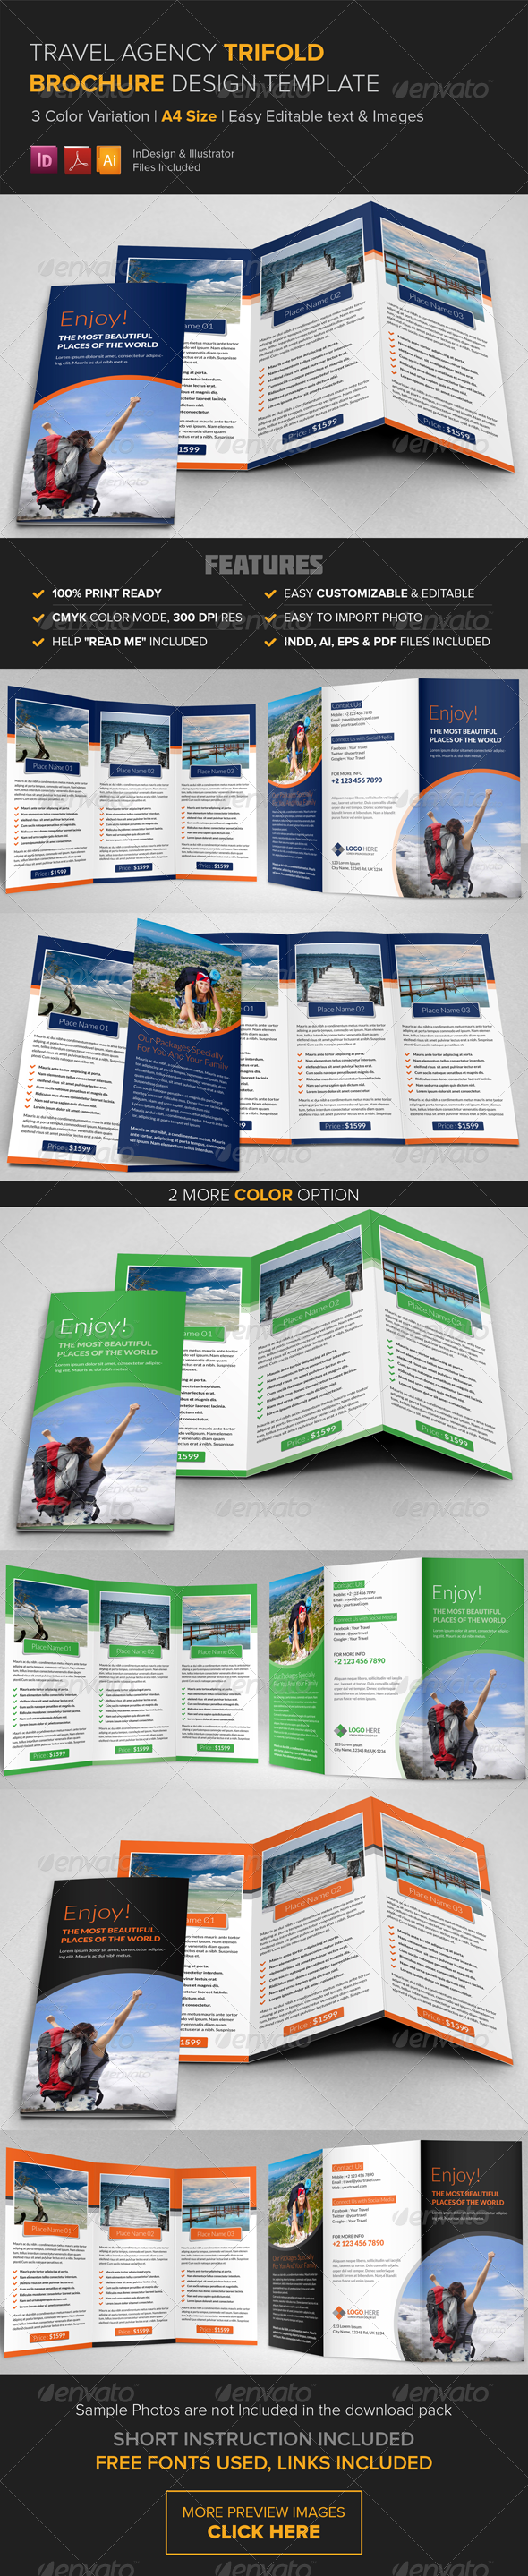 Travel Agency Trifold Brochure Template  Brochure Template